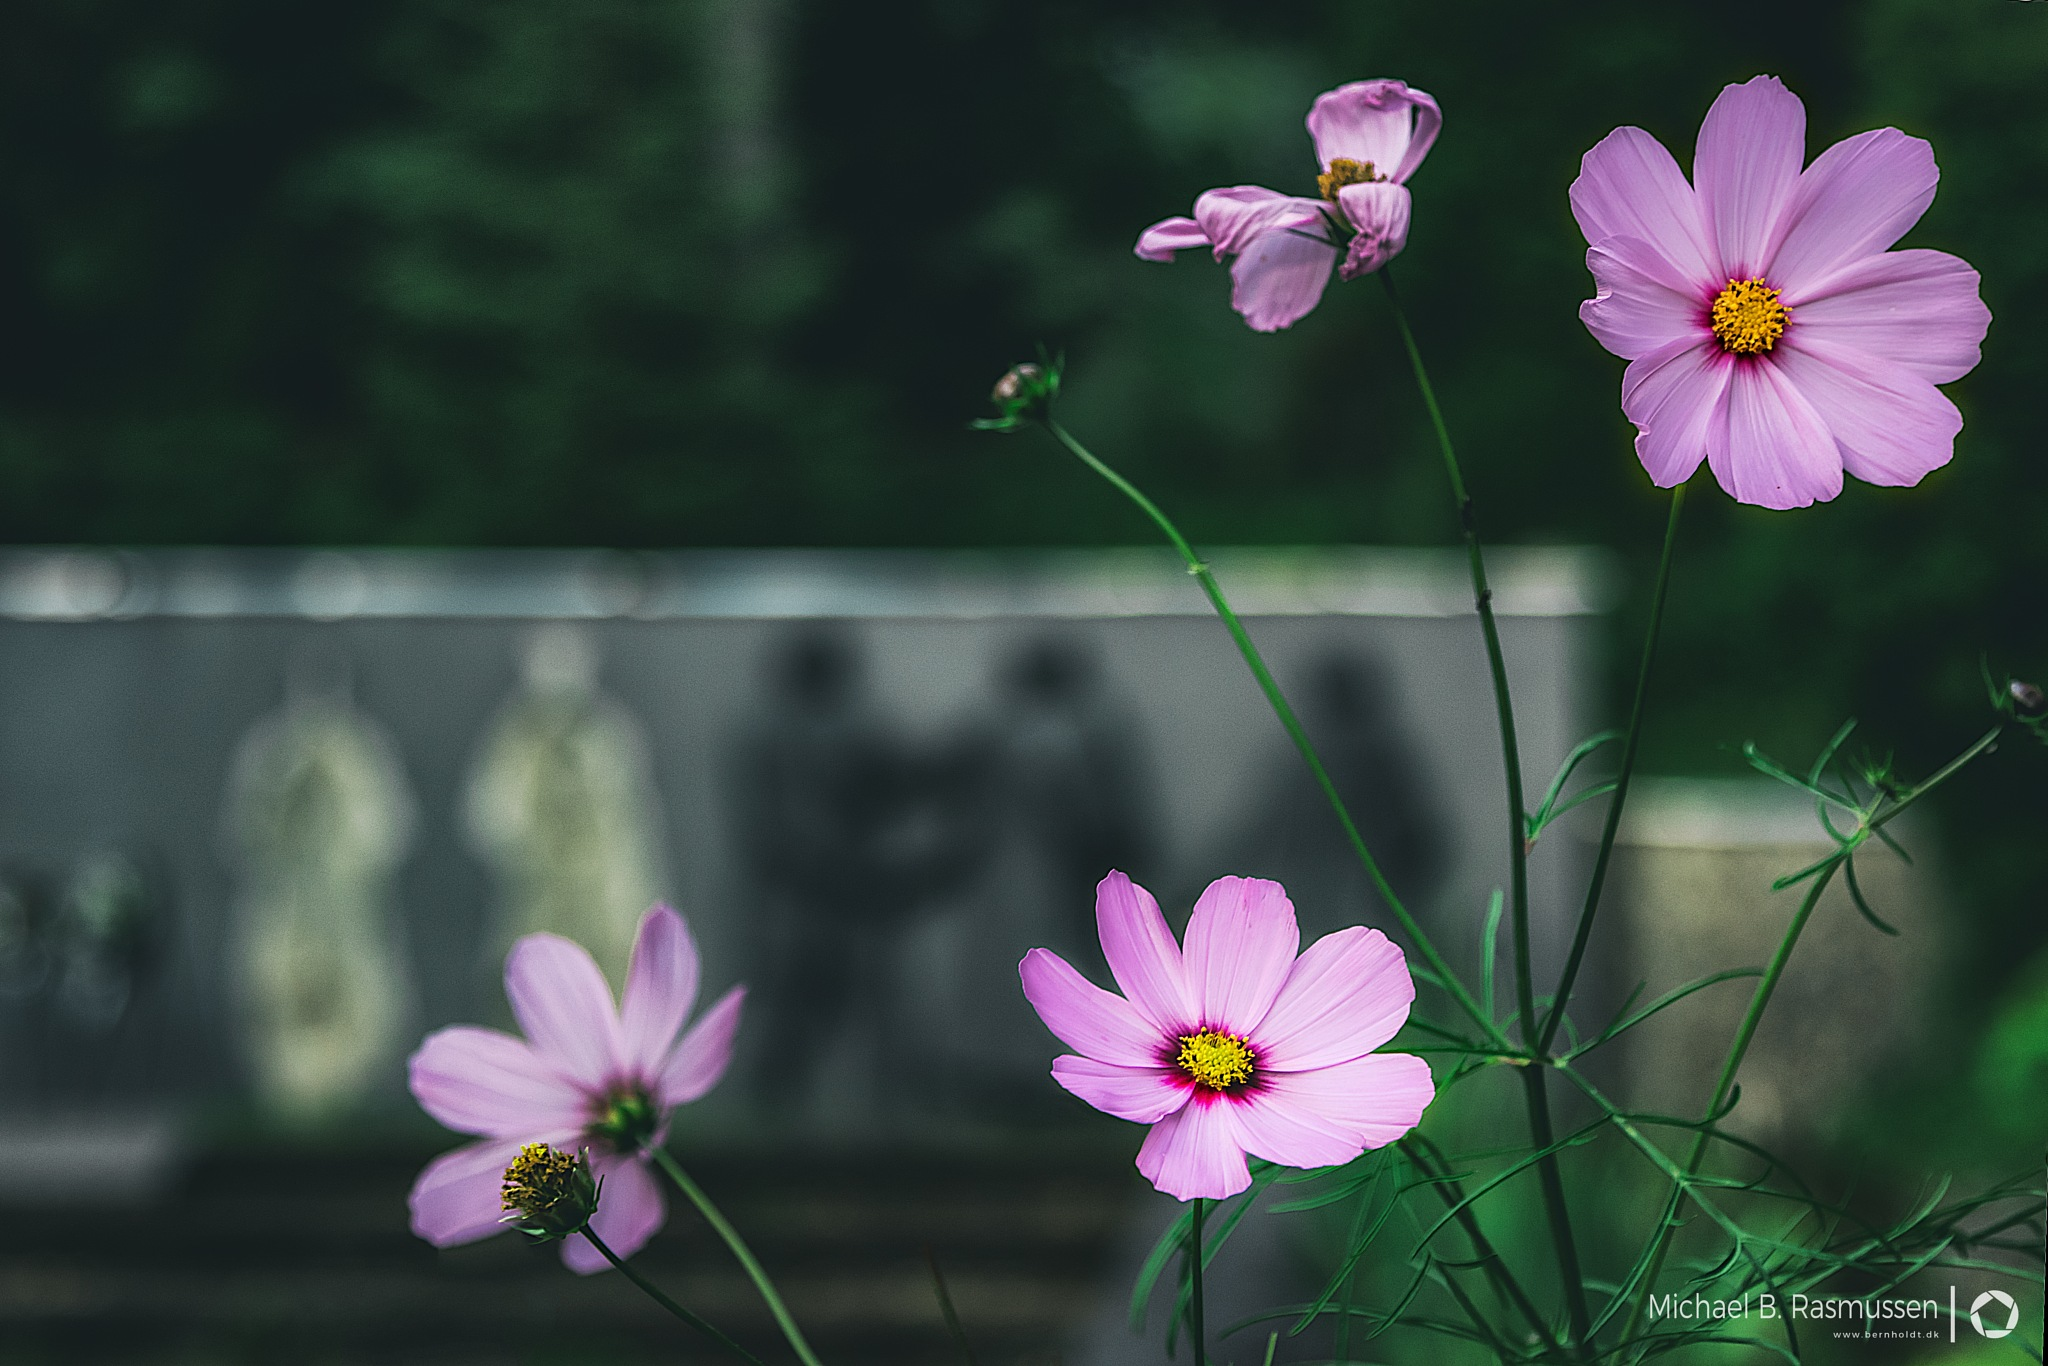 Some pink flowers by Michael B. Rasmussen